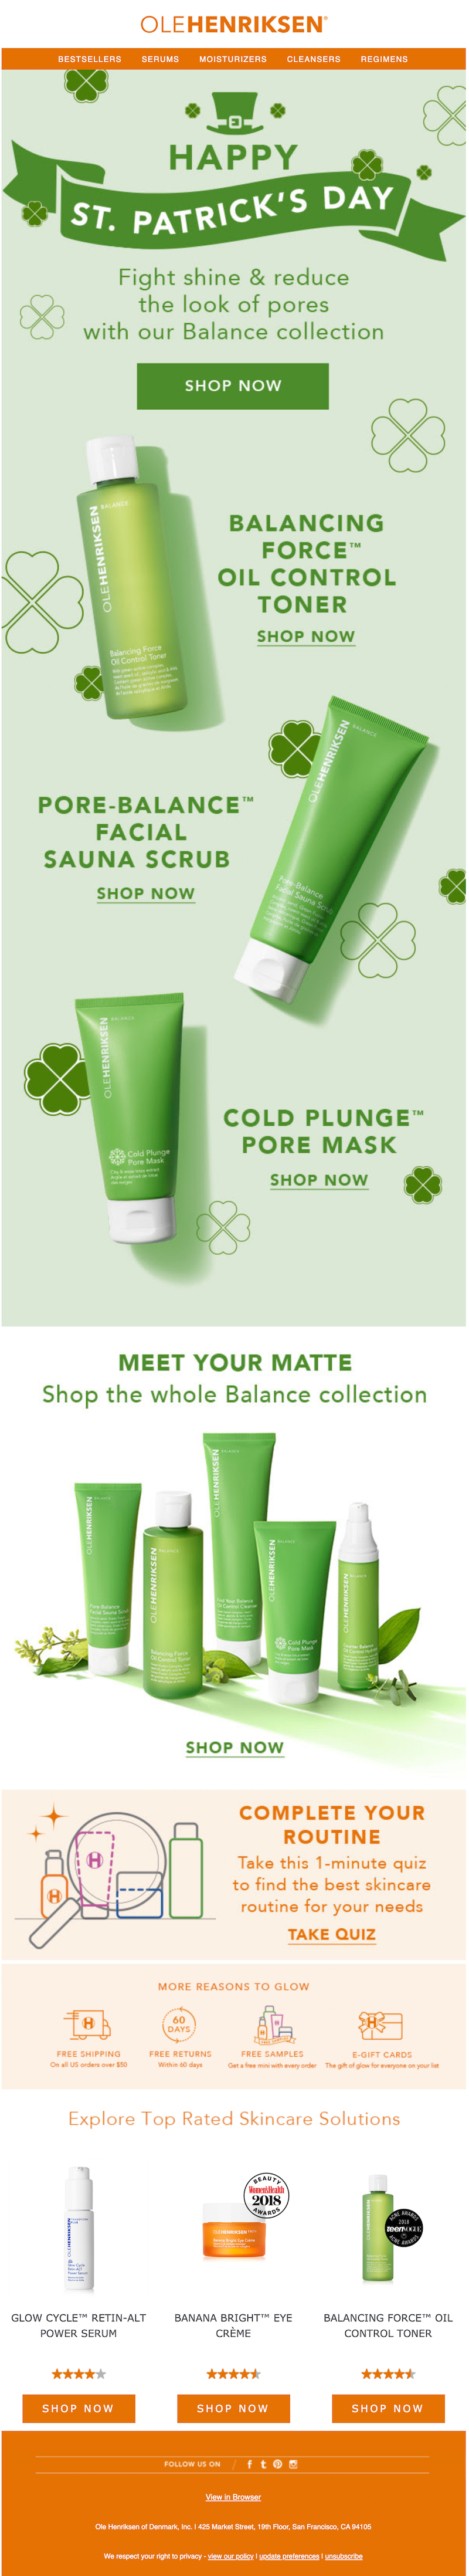 st patrick's day email design